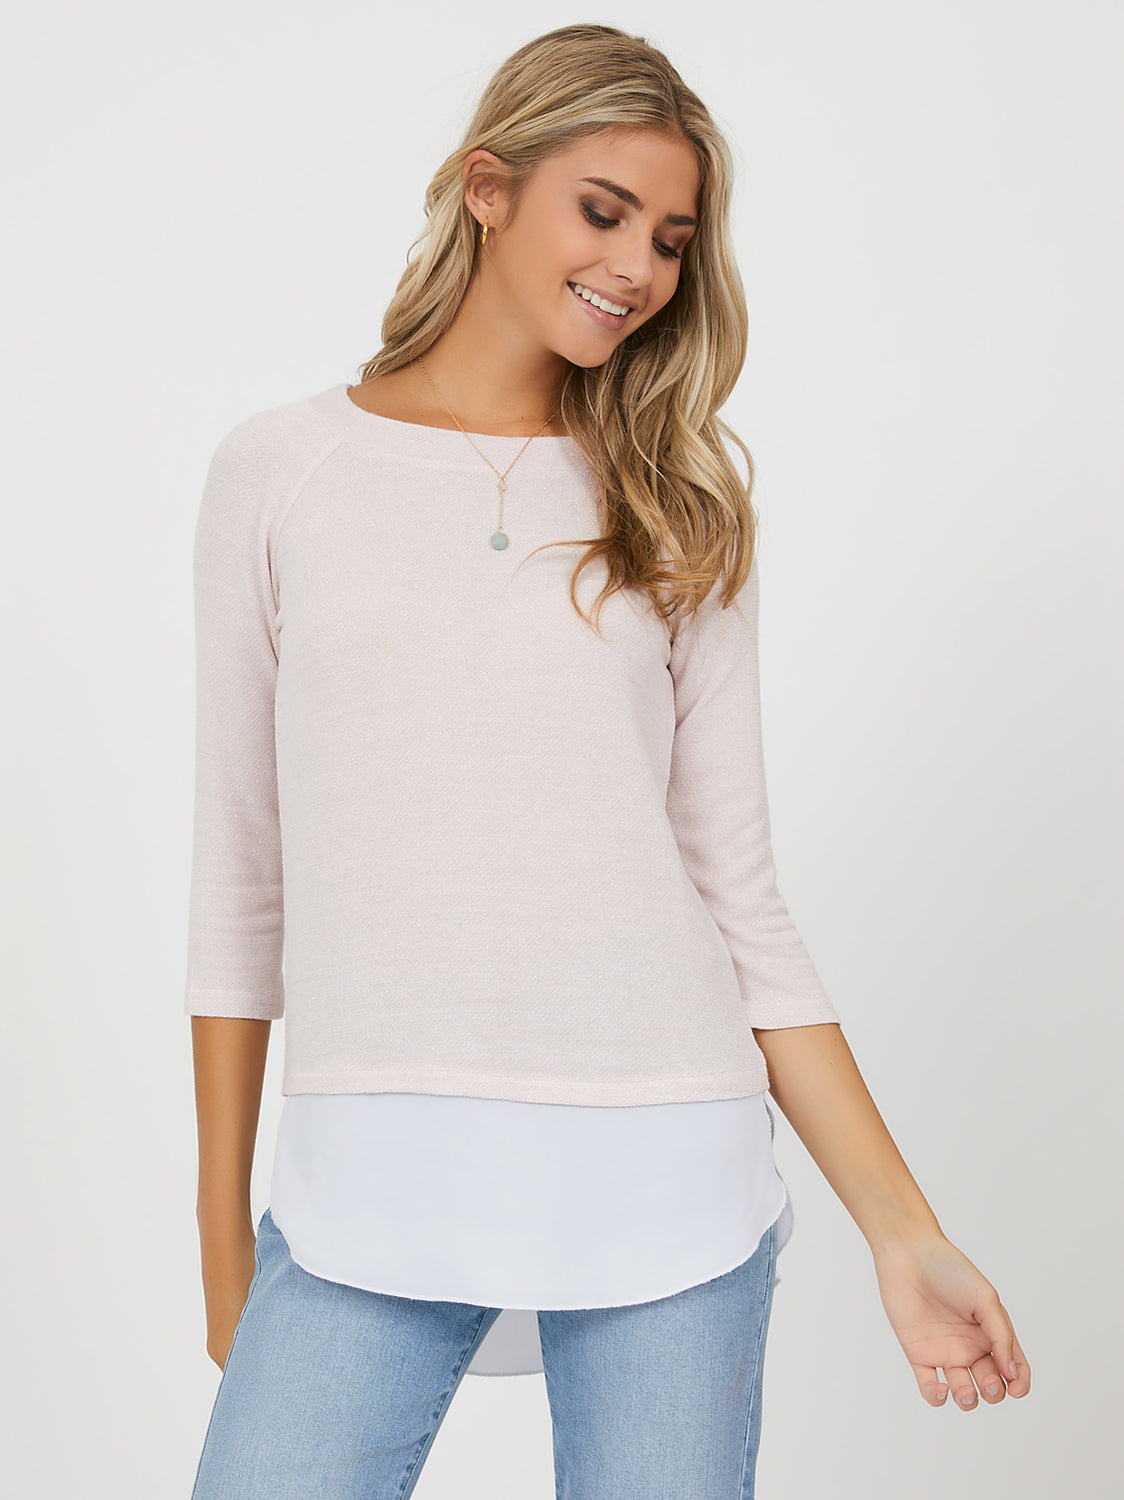 3/4 Sleeve Sweater Knit Chiffon 2fer Top